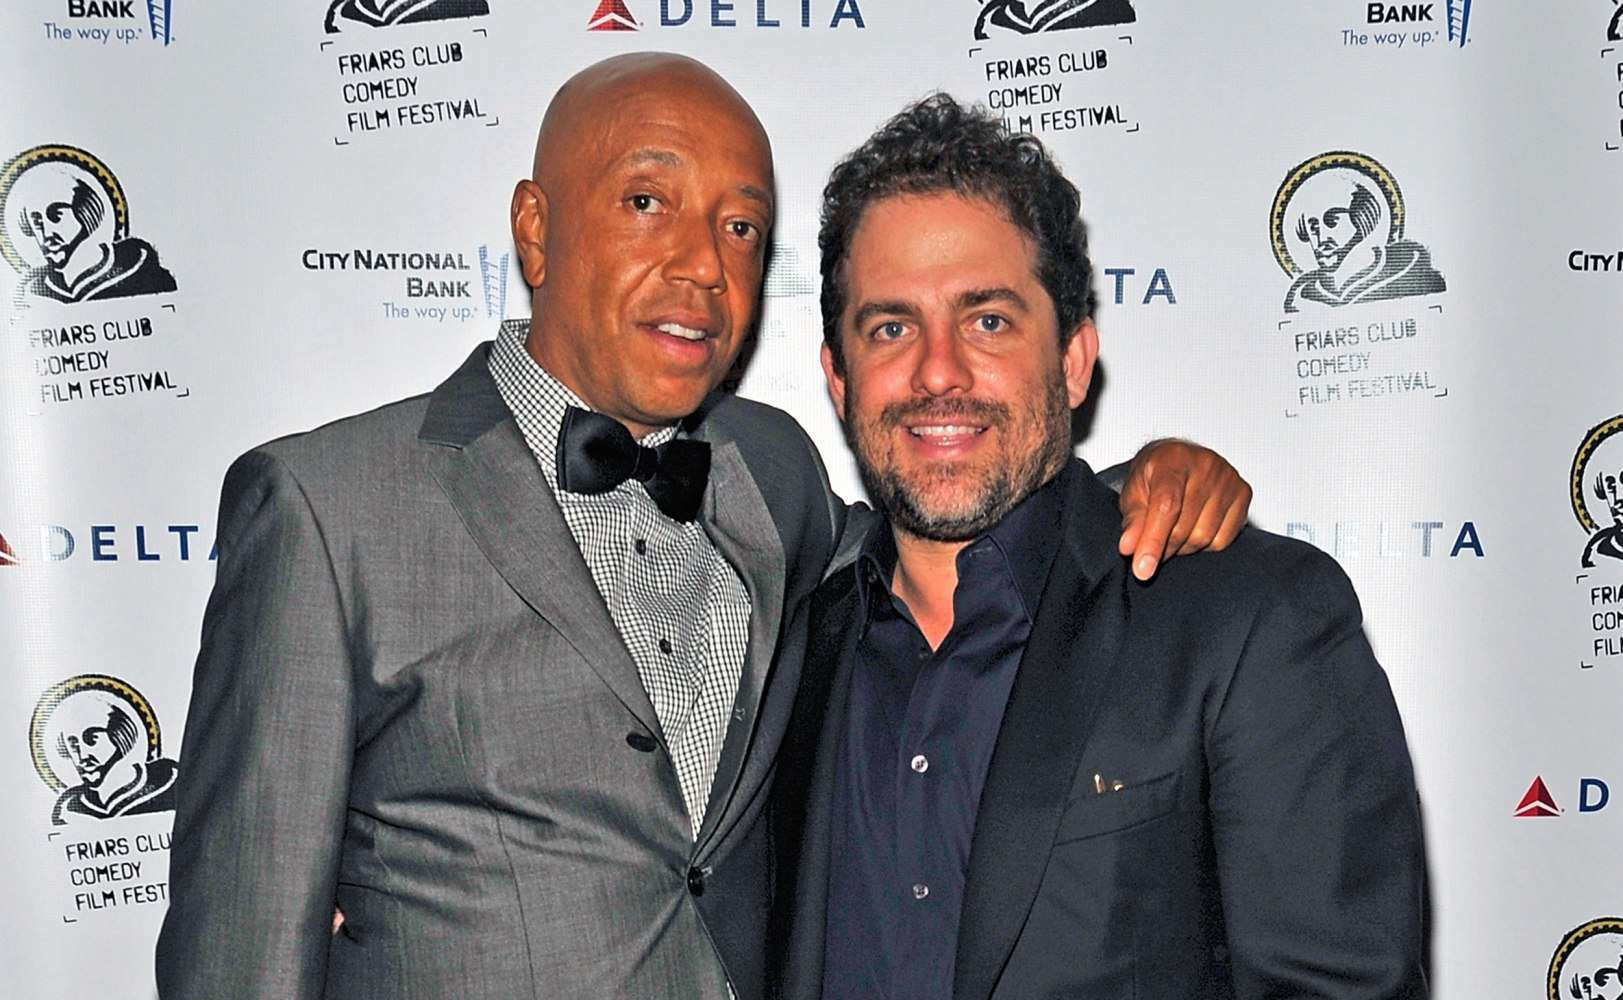 Model claims Russell Simmons forced her into sex while Brett Ratner watched